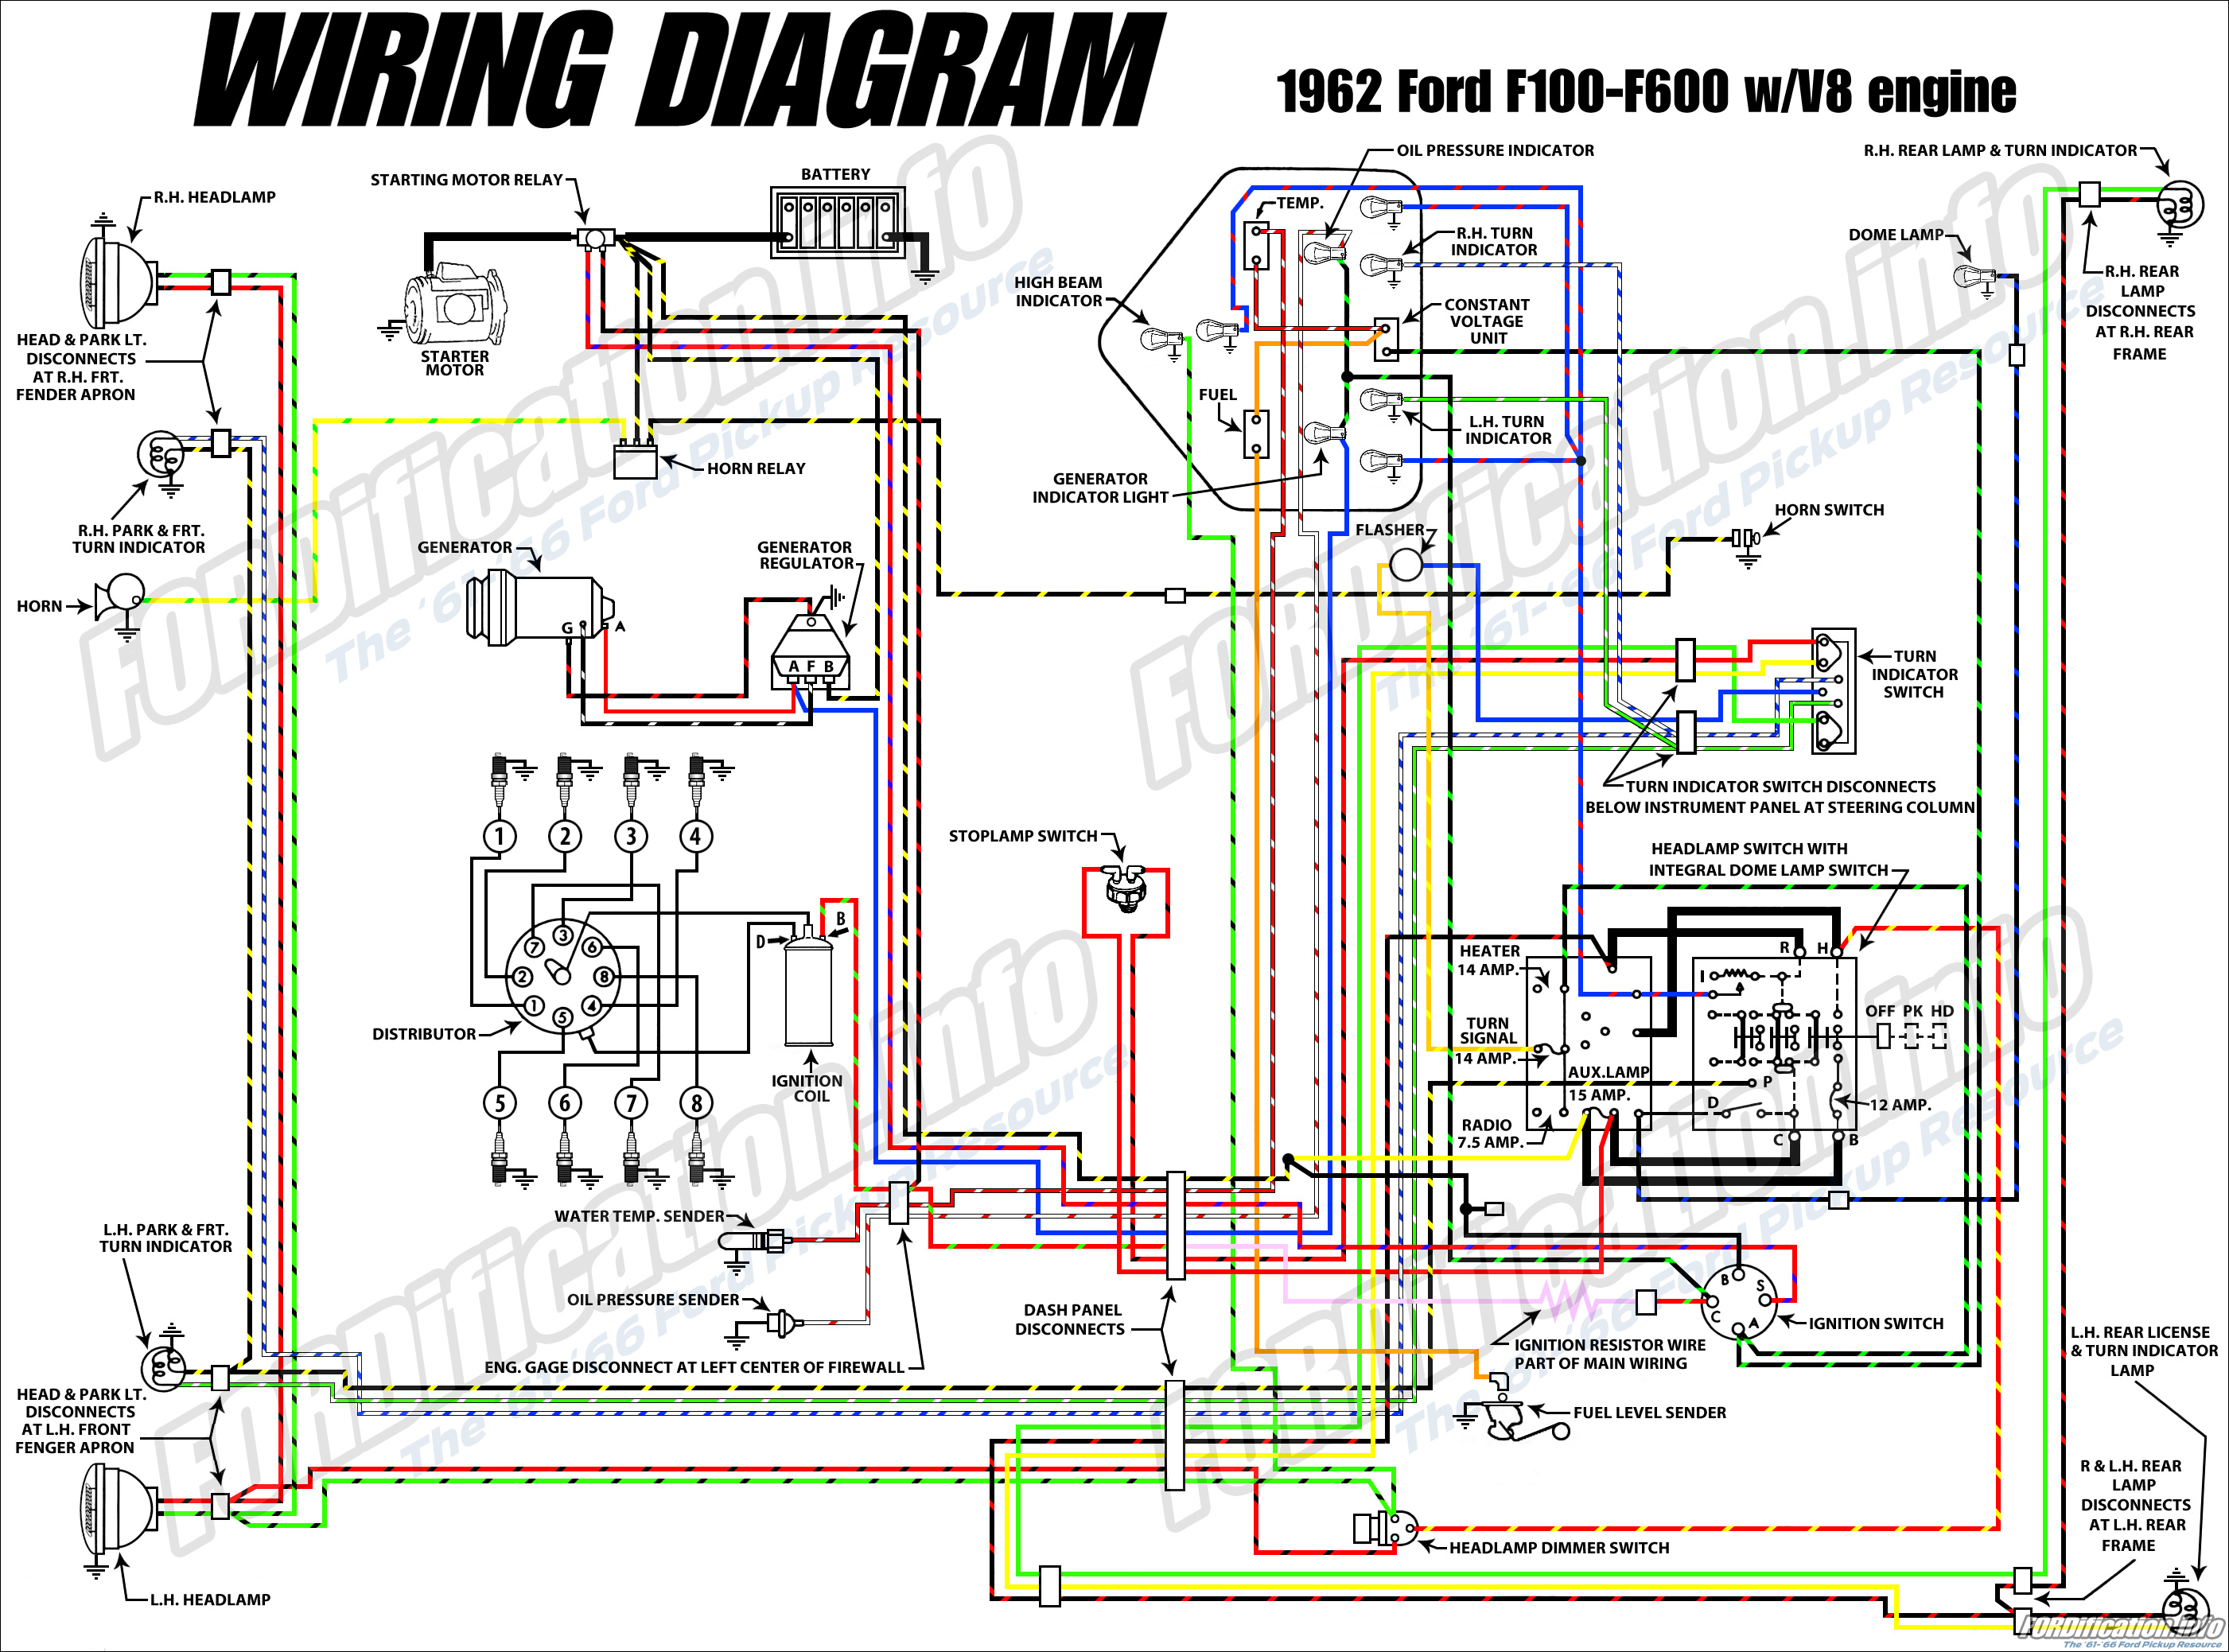 1962 ford truck wiring diagrams fordification info the '61 '66 Wiring Diagram for Recreational Vehicles 1962 ford truck wiring diagrams fordification info the '61 '66 ford pickup resource Bass Pickup Wiring Diagrams